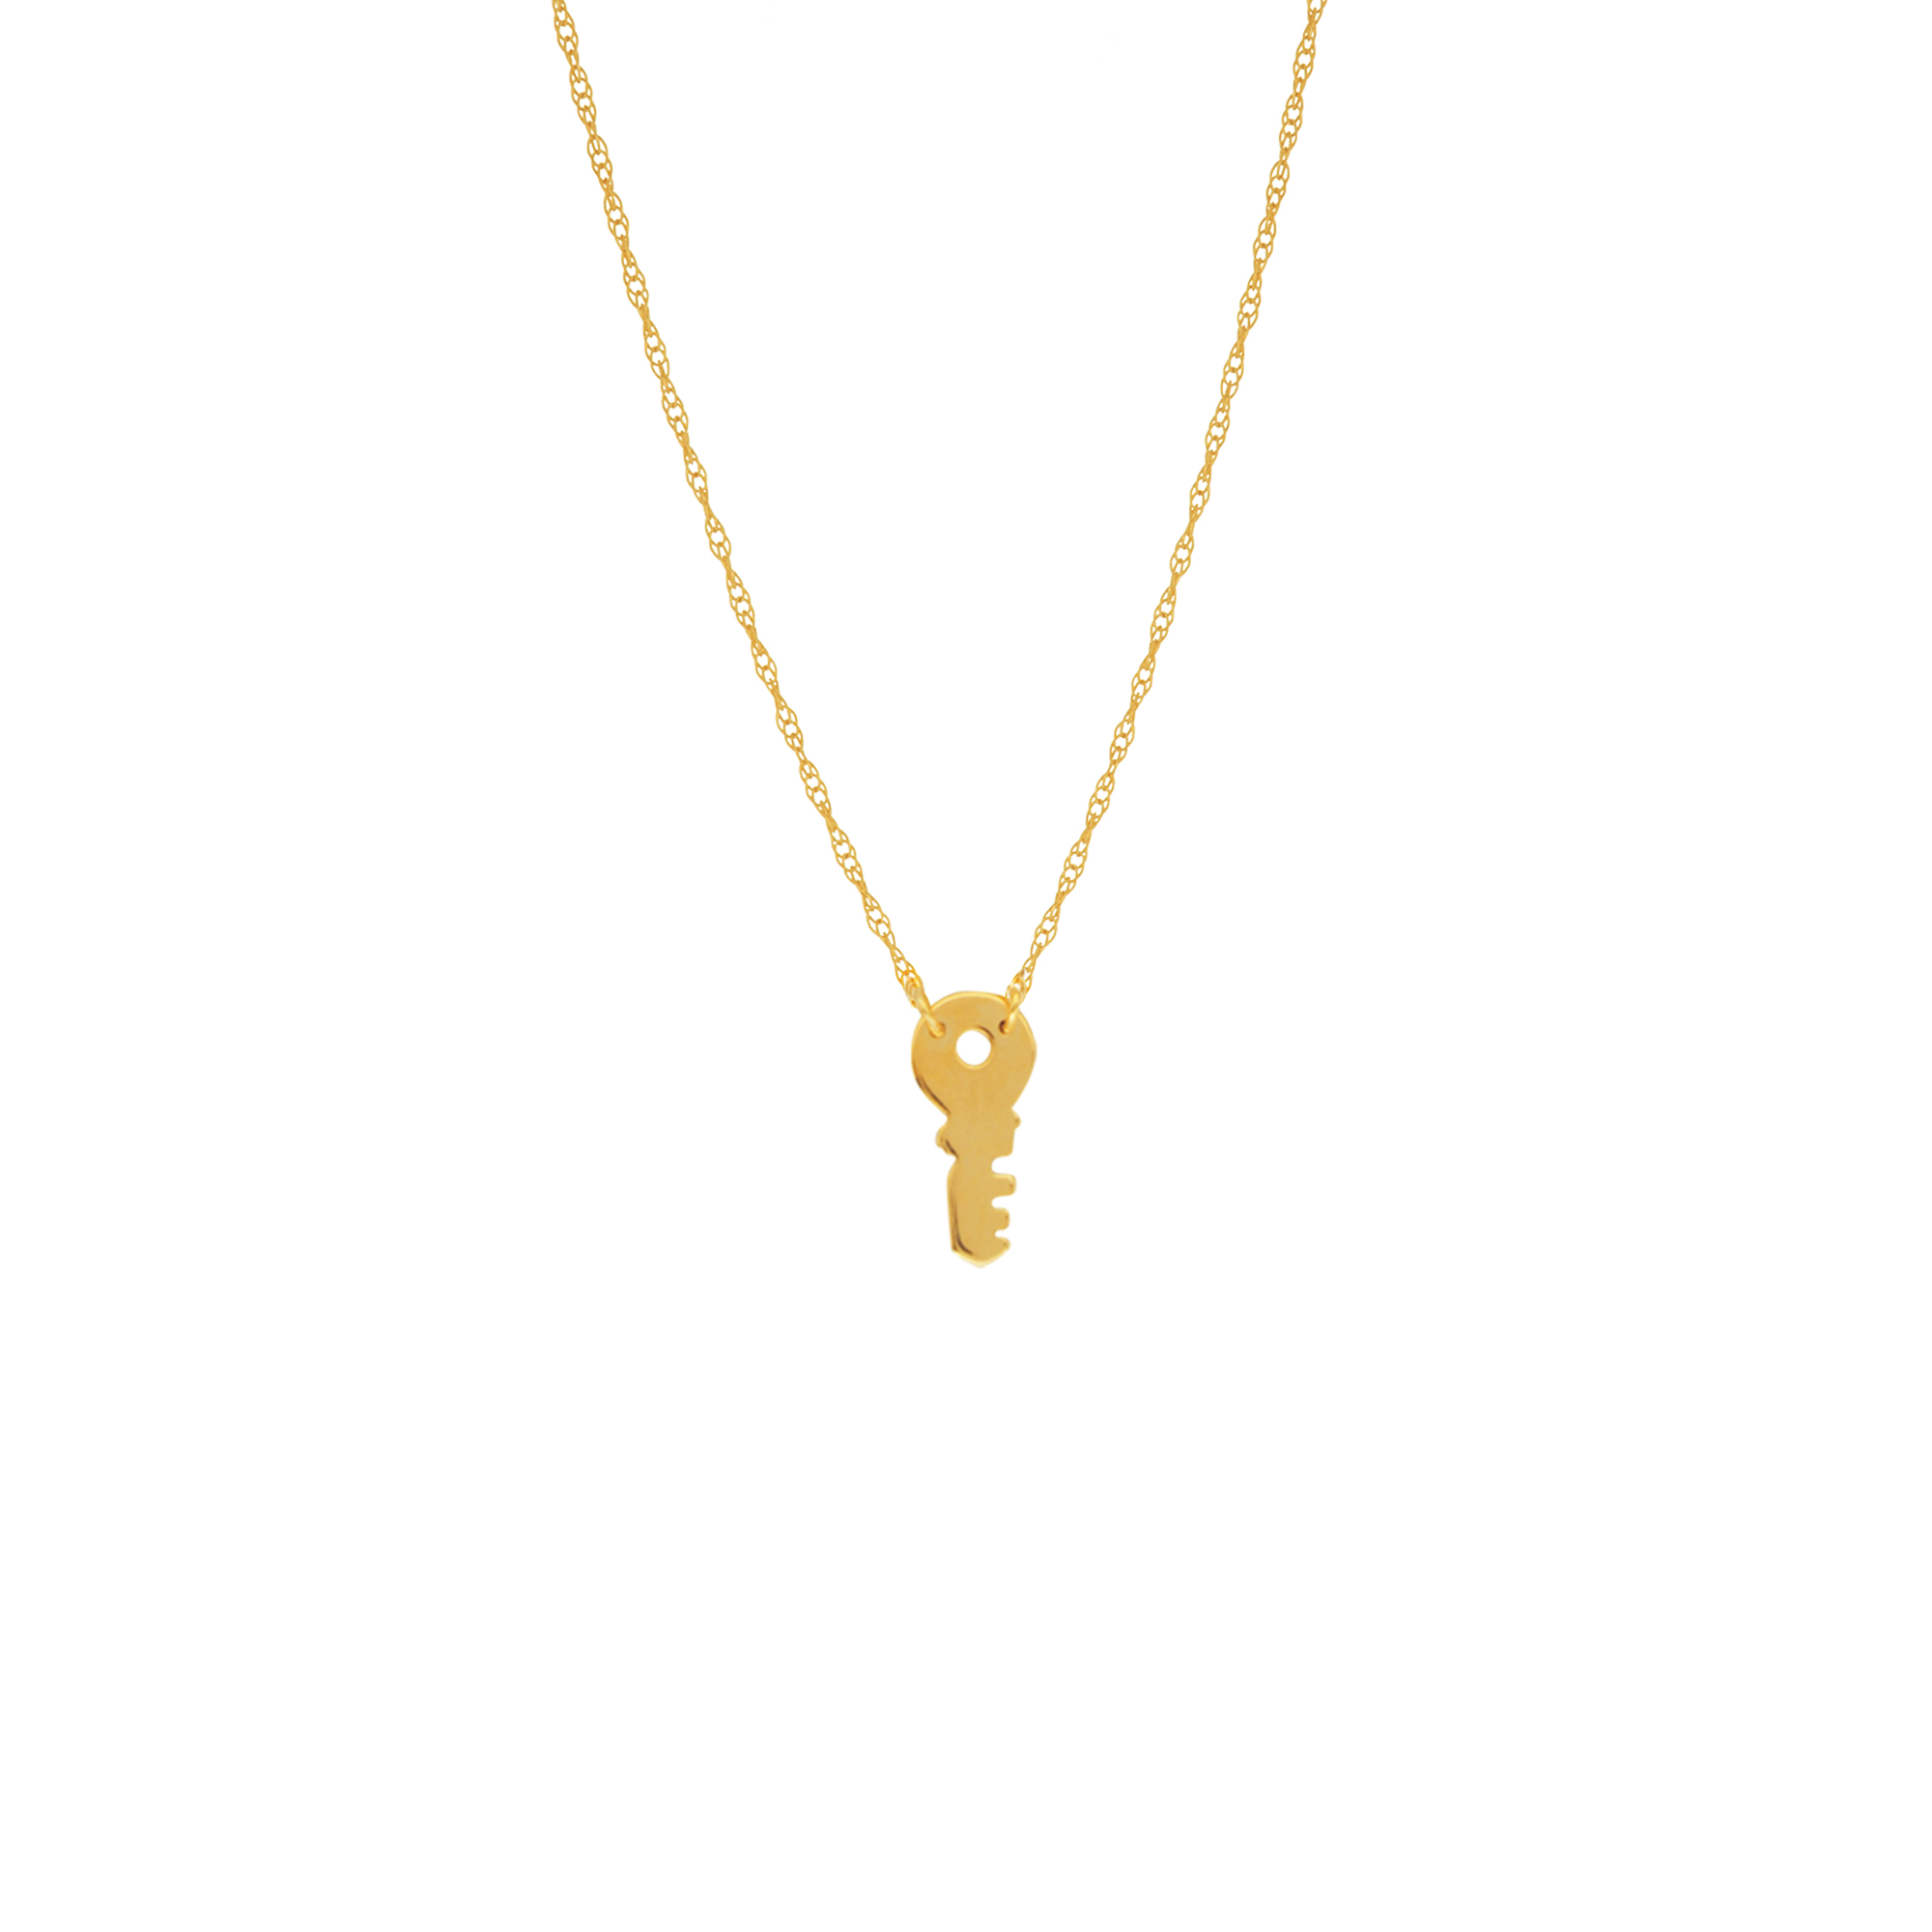 Key Necklace,14Kt Gold Key Necklace 18